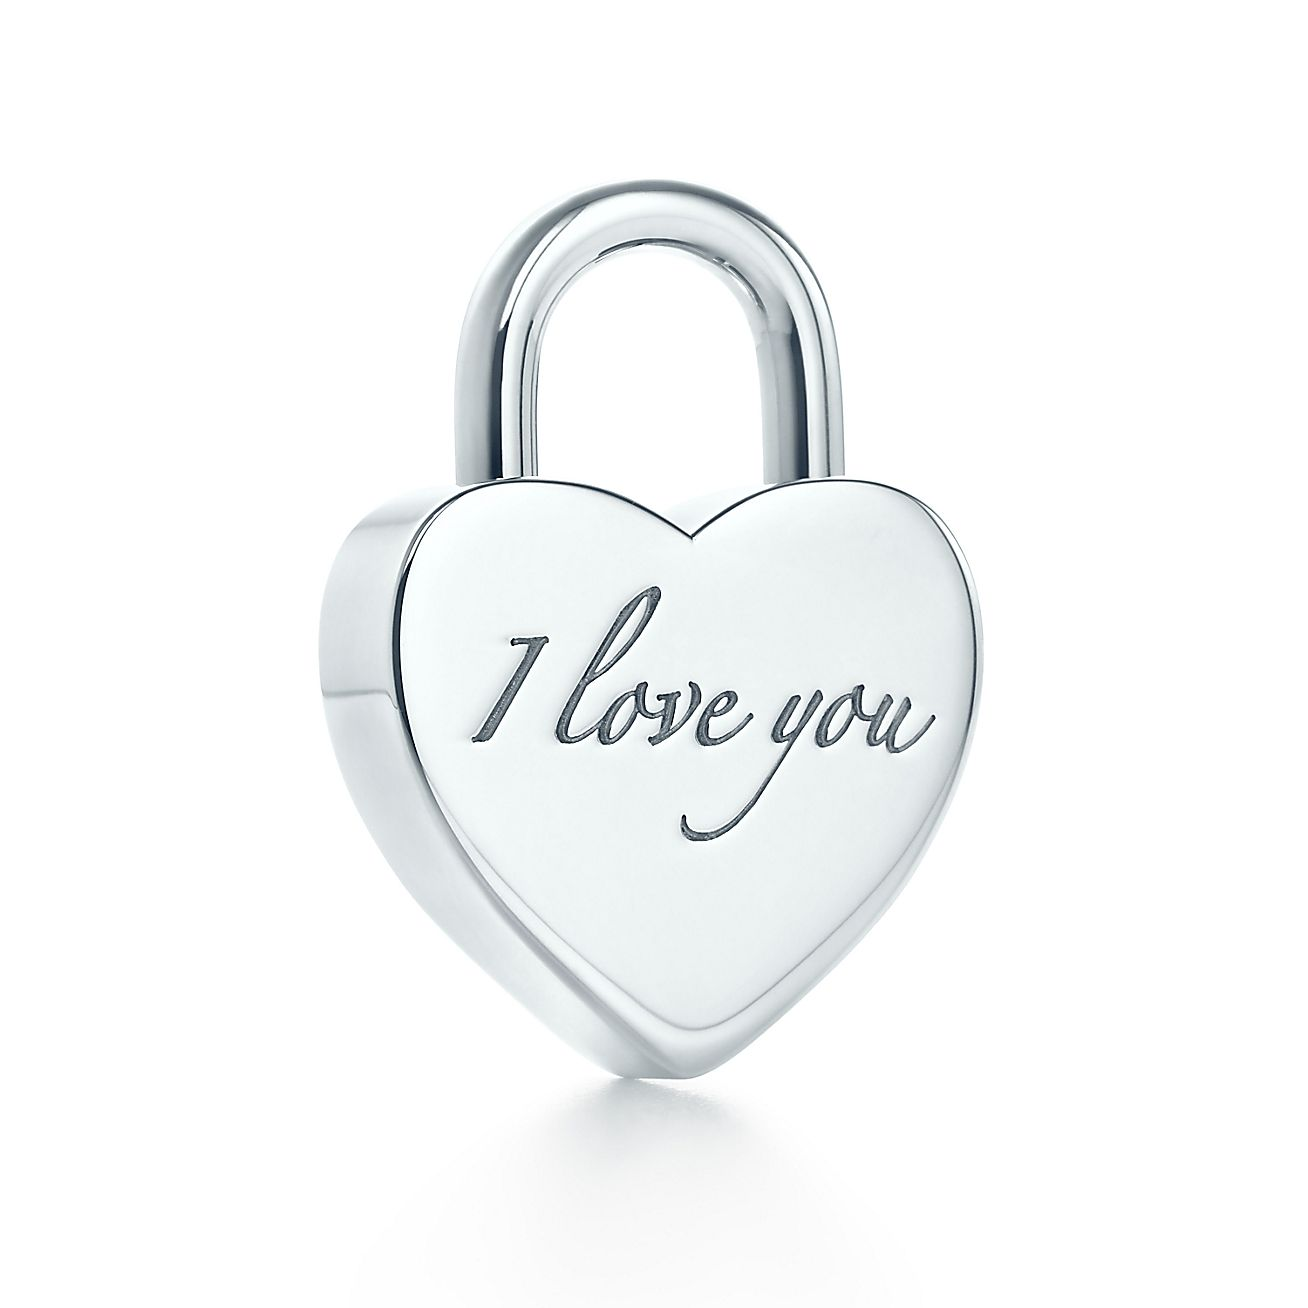 Tiffany Notes<br>I Love You lock charm